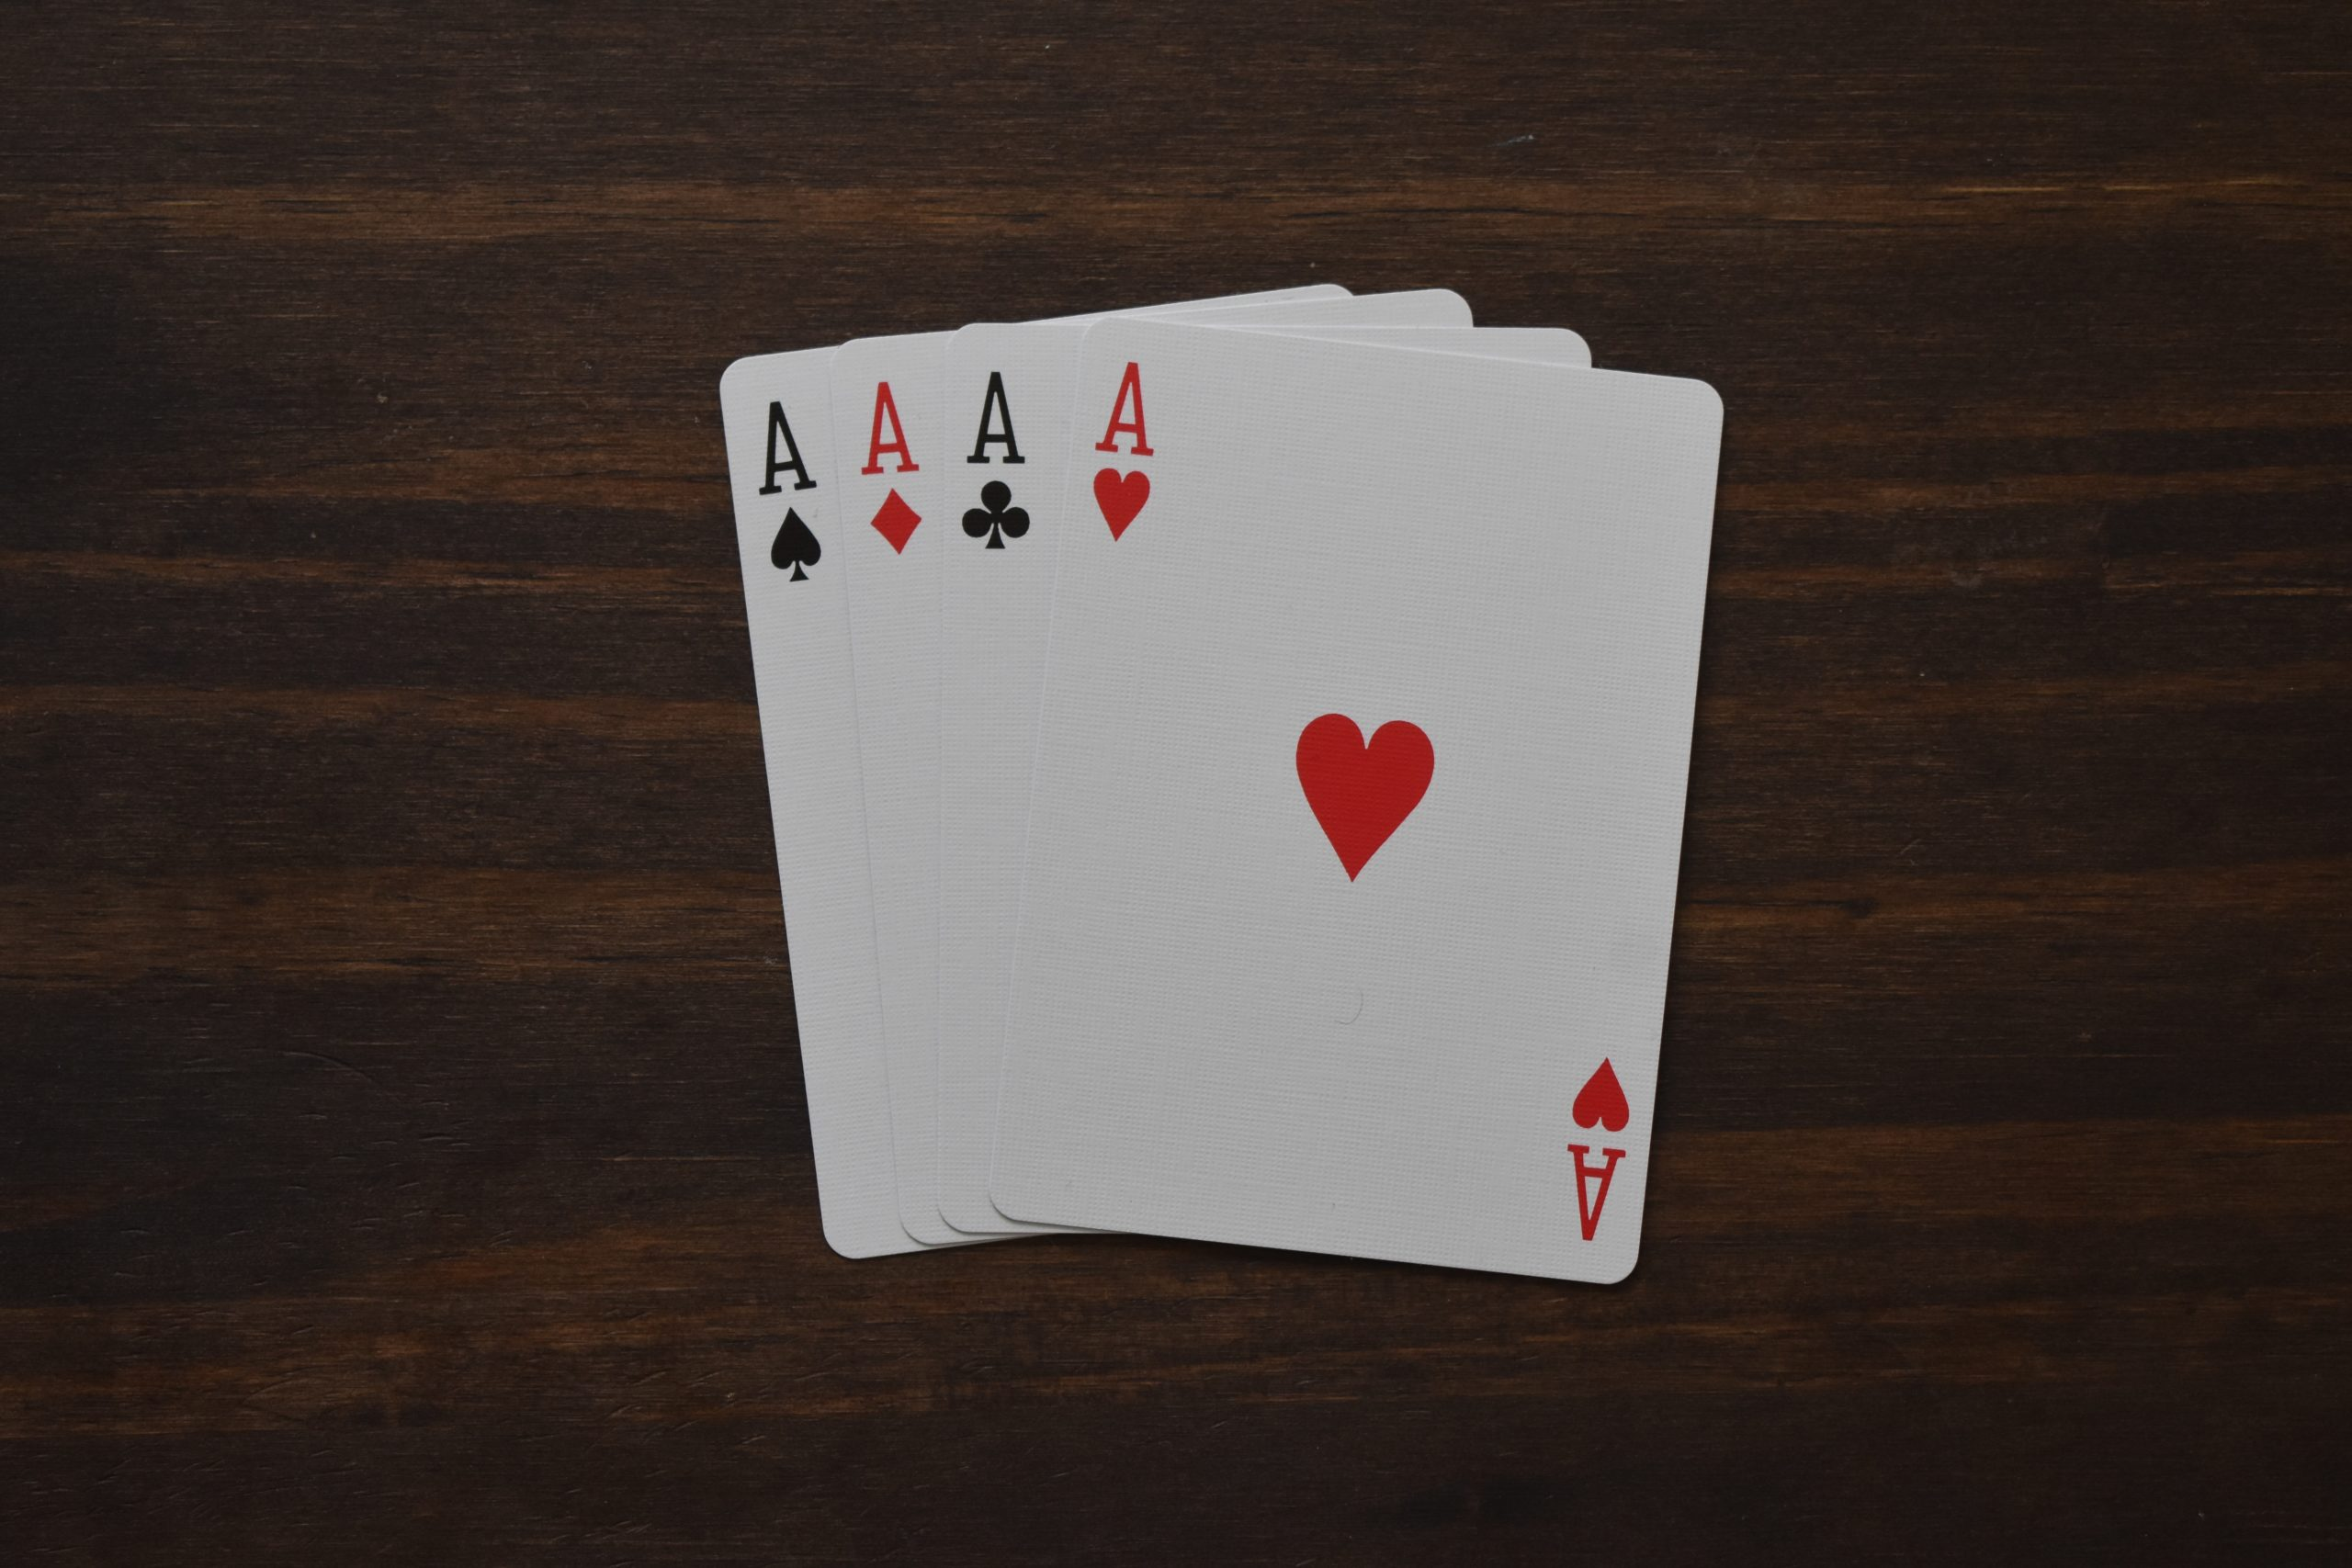 Pyramid Solitaire: How To Play, Rules, Variations And More